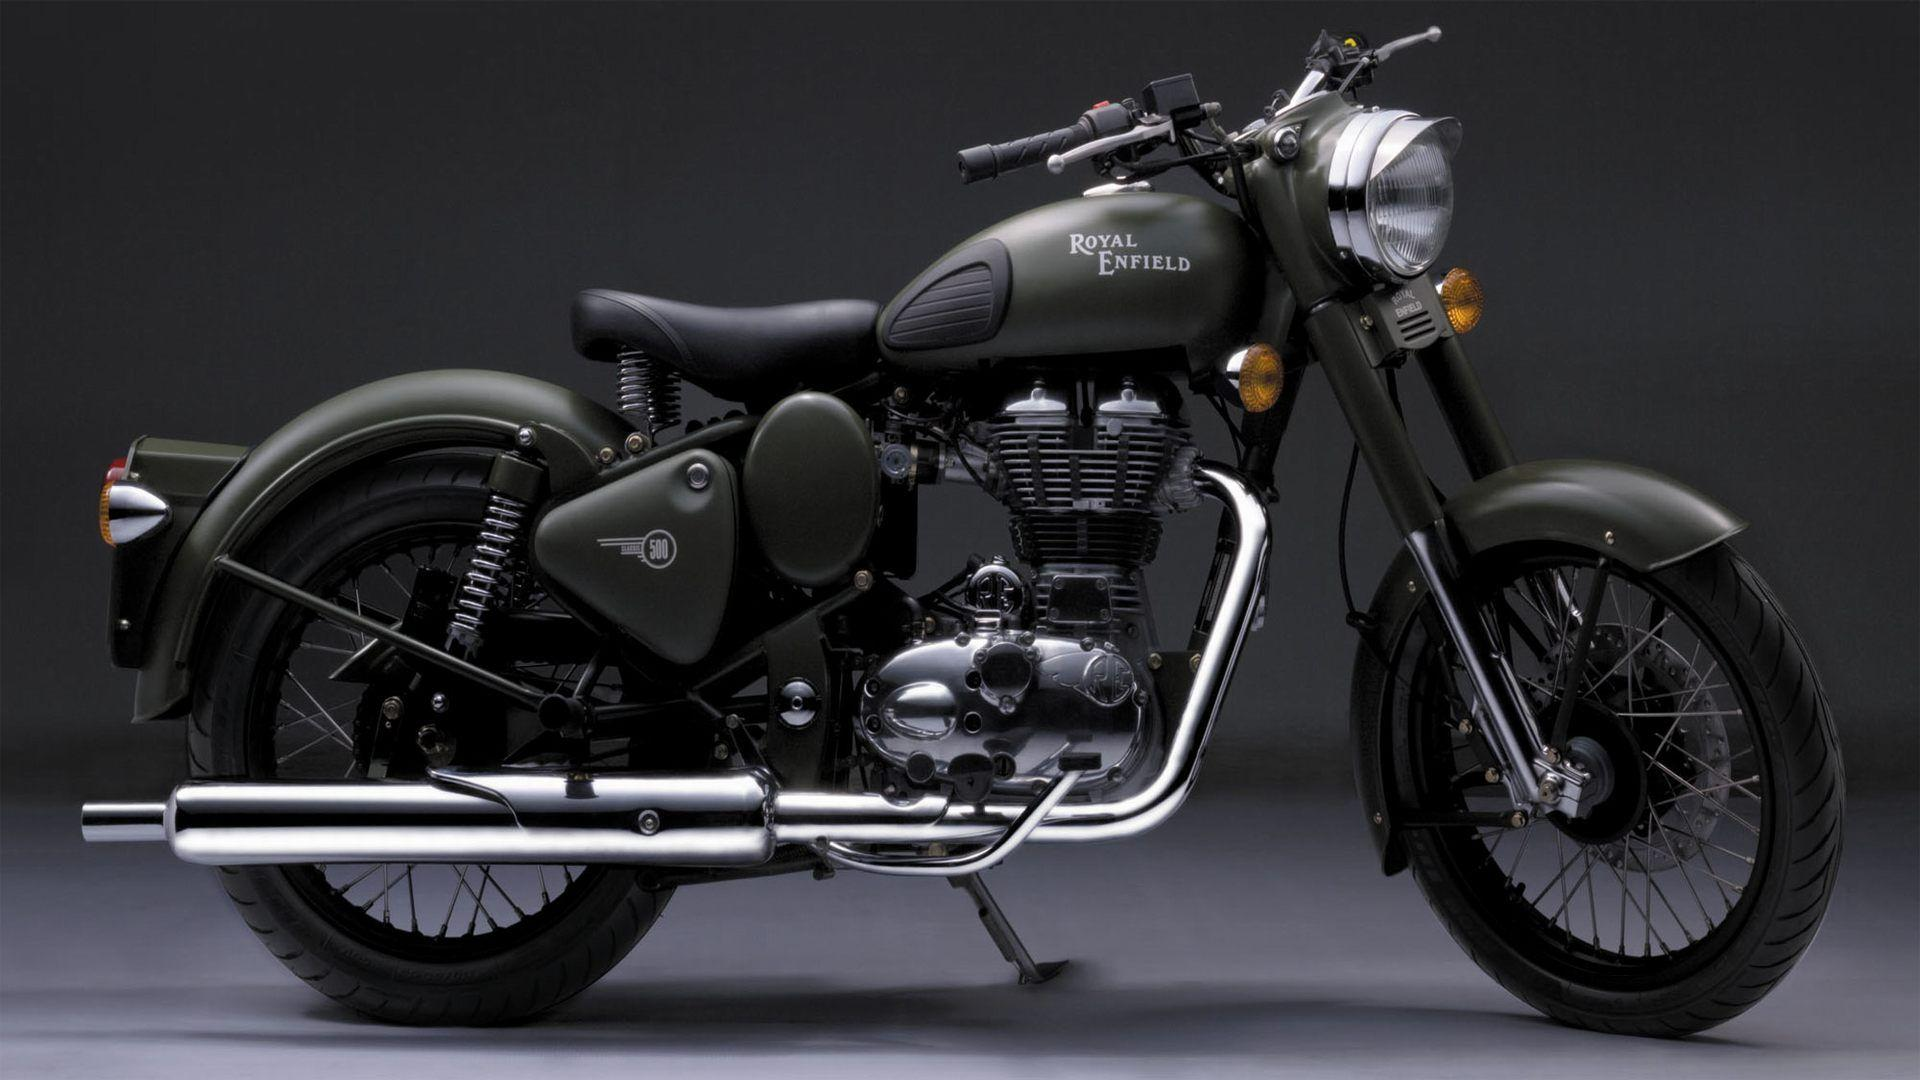 Royal Enfield Classic 350 Hd Wallpapers 1080p Disrespect1st Com